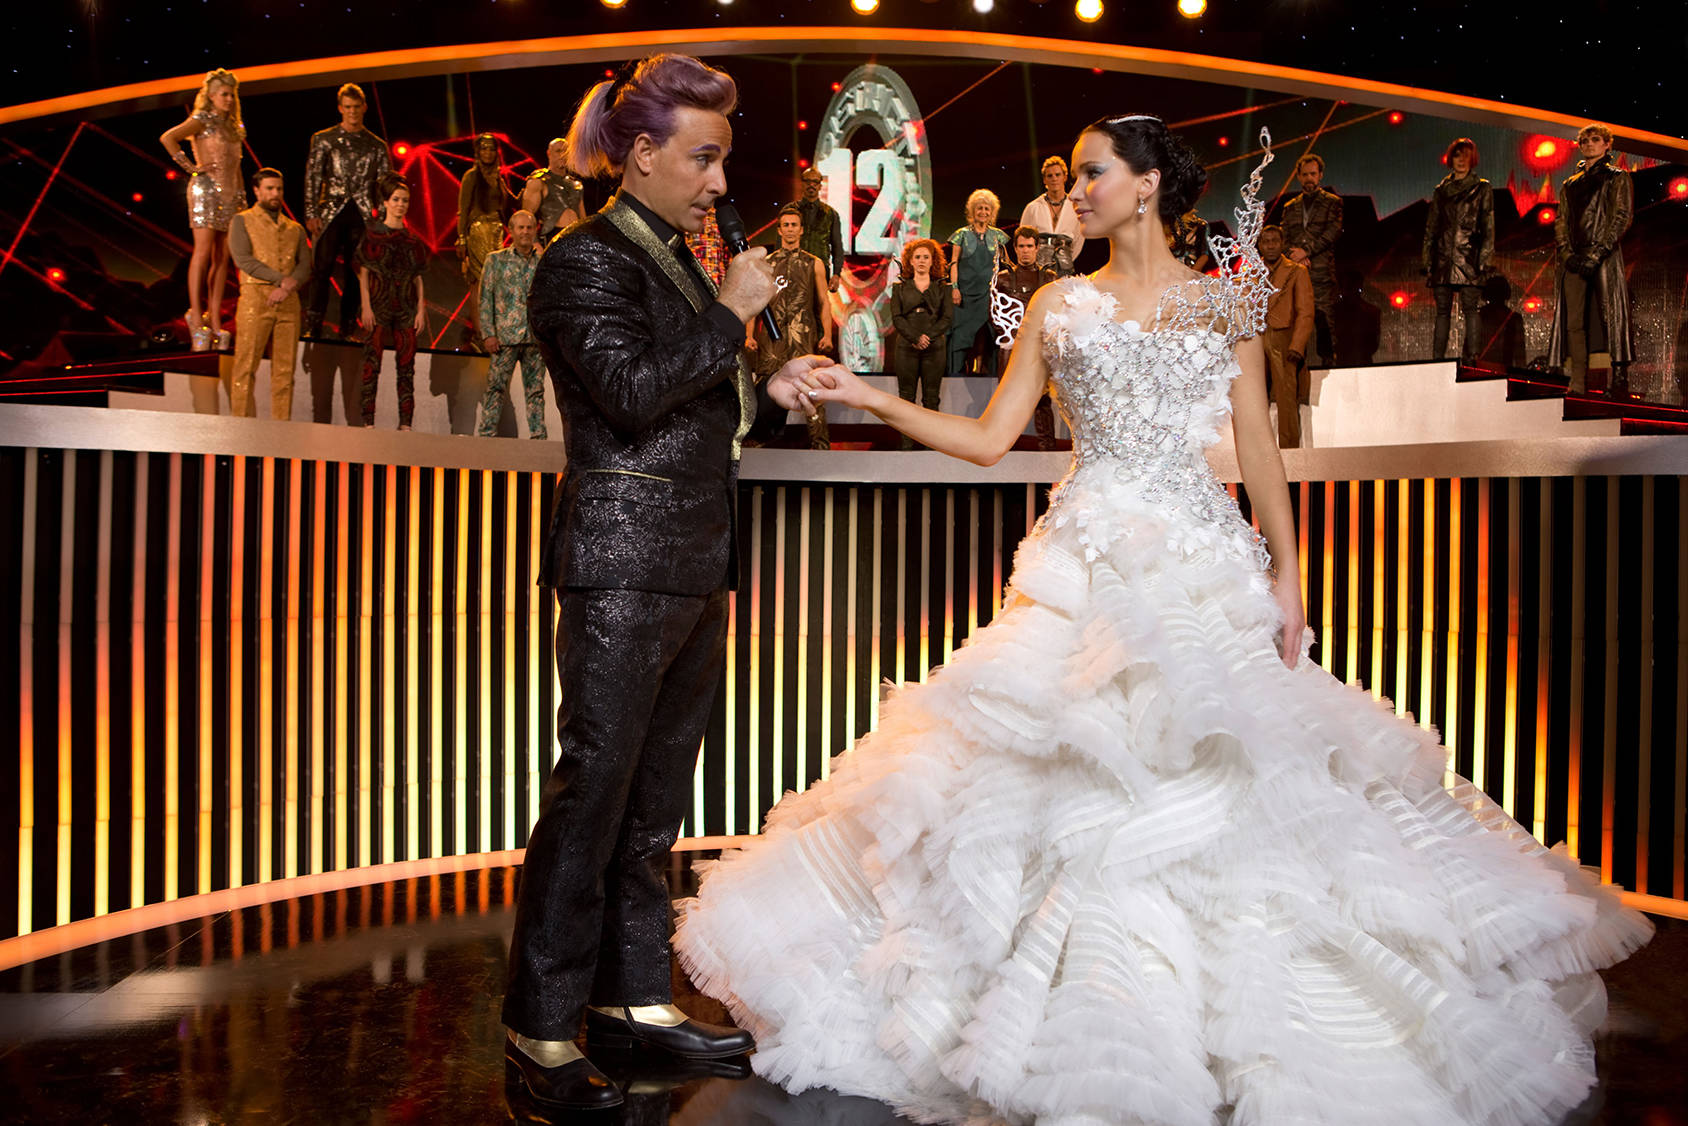 Katniss in her 11 kilogram wedding dress, All Over Press.